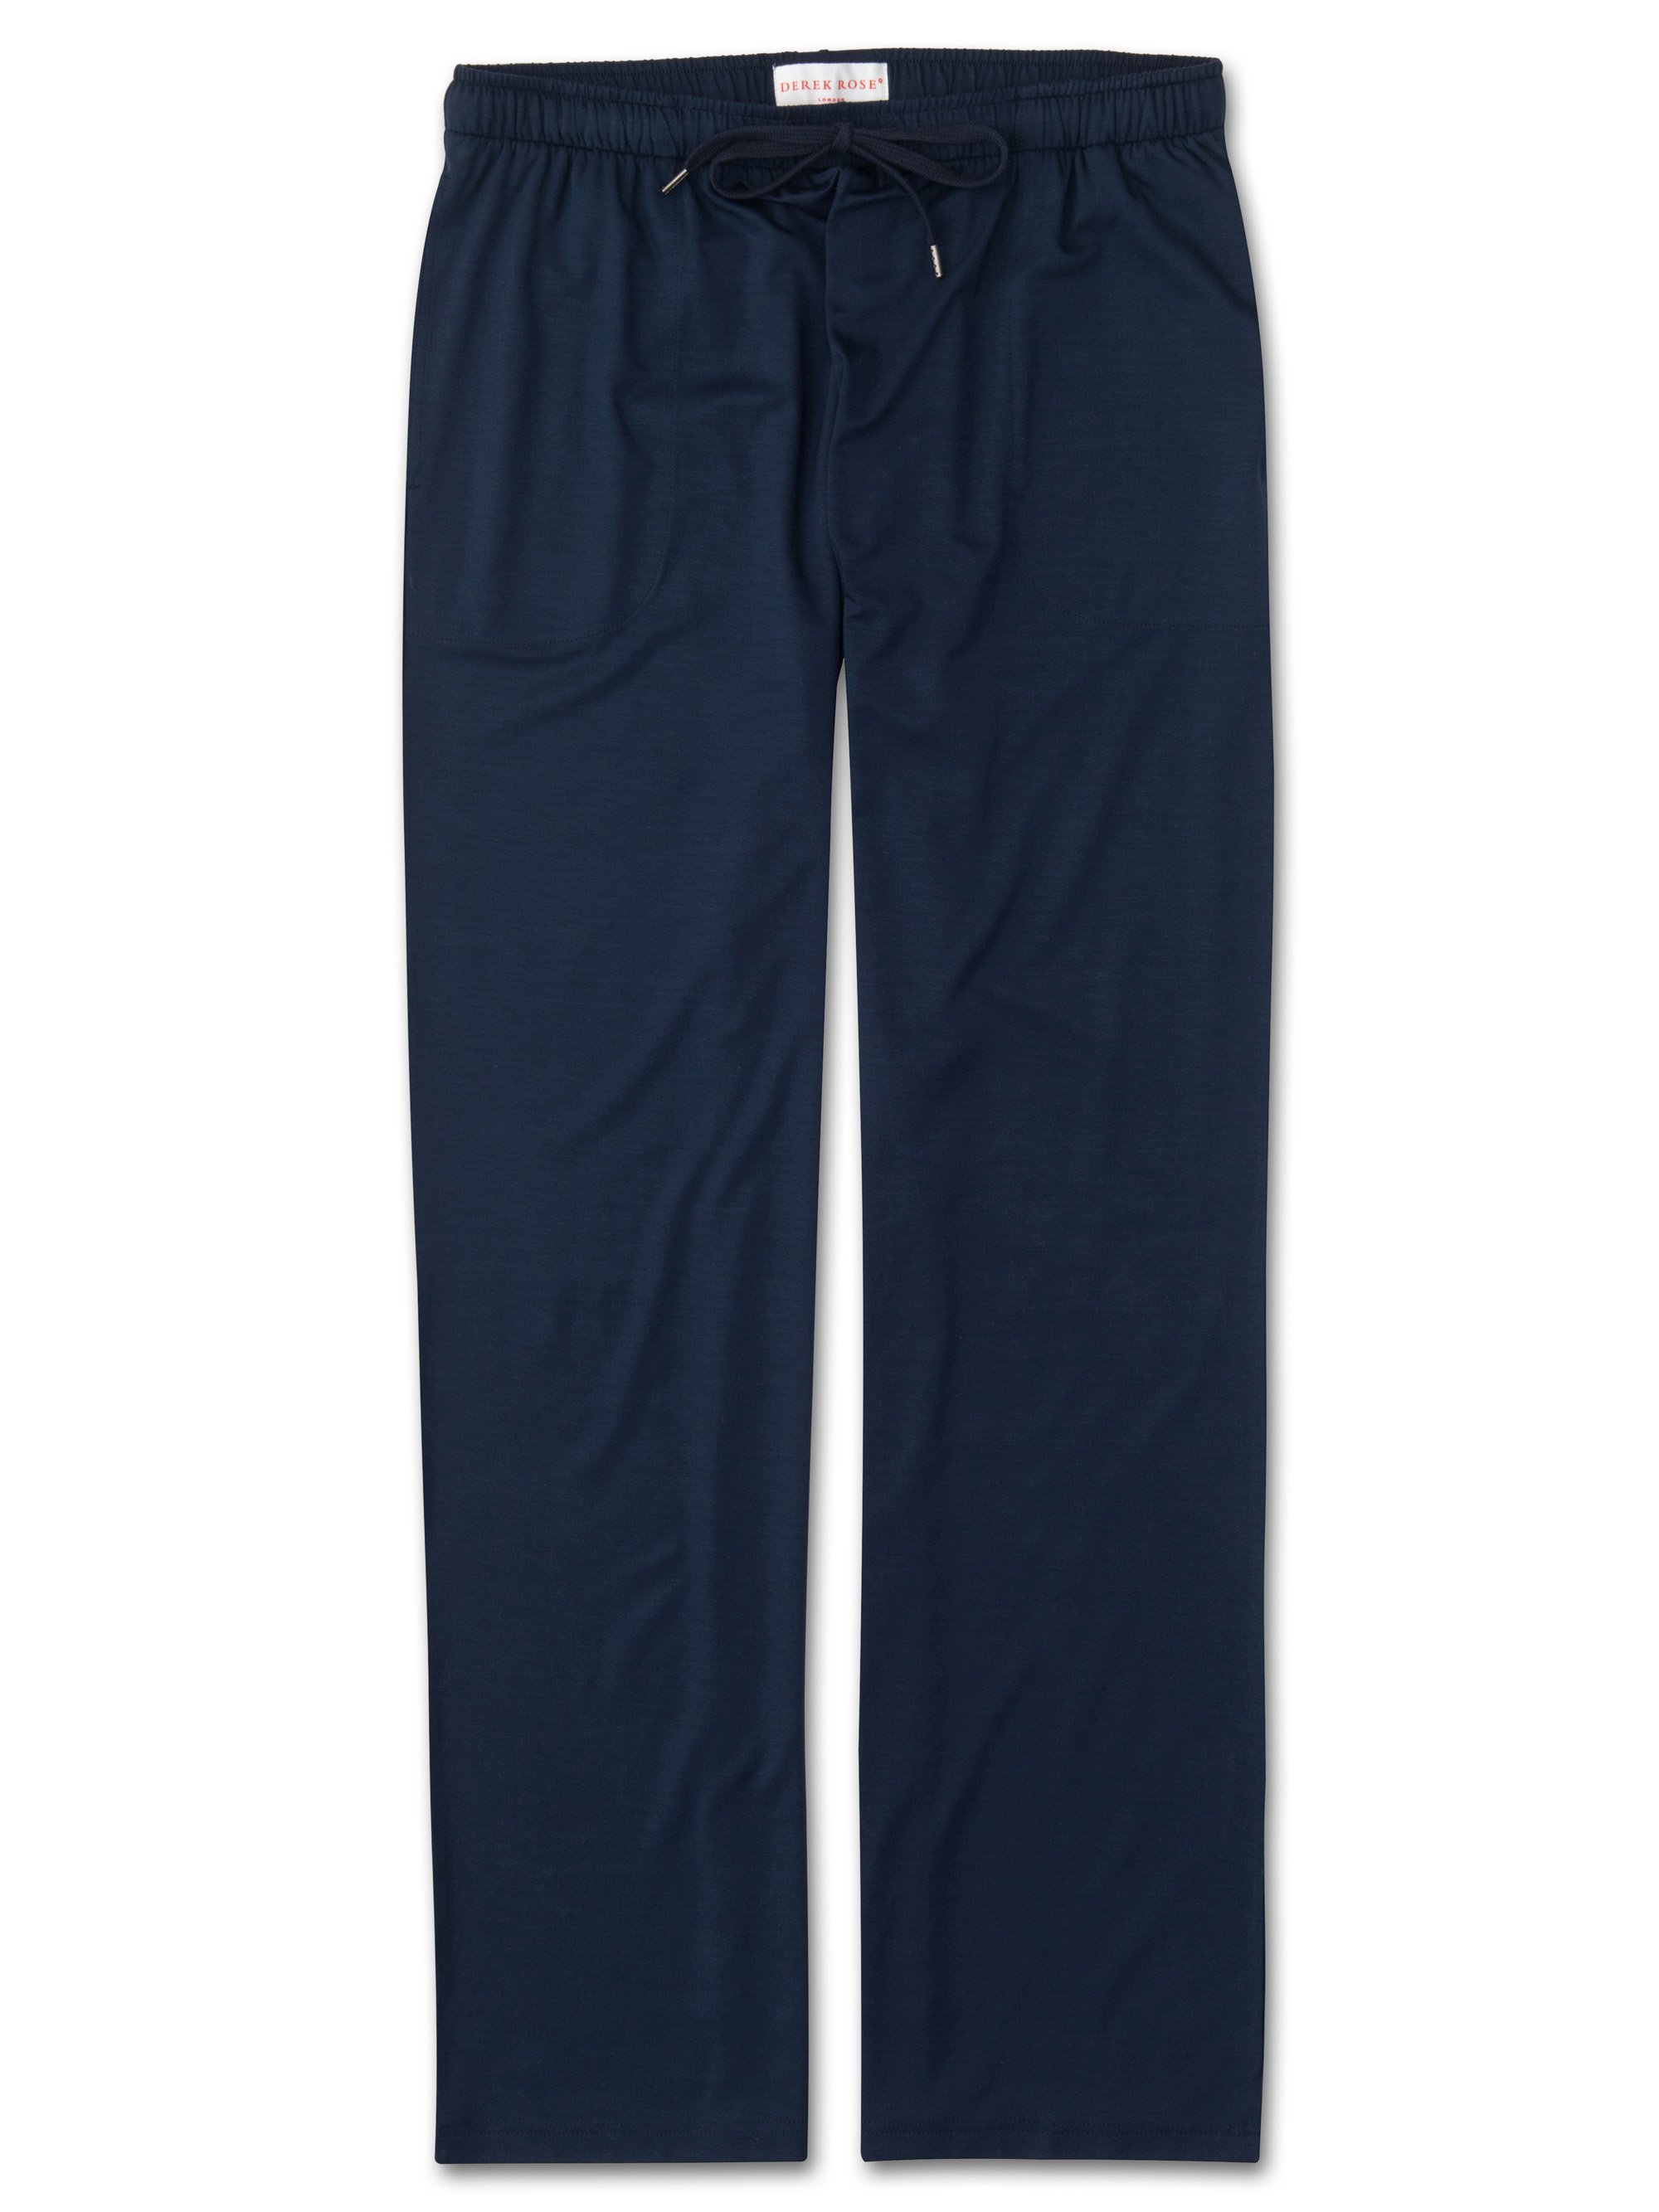 Men's Jersey Trousers Basel Micro Modal Stretch Navy